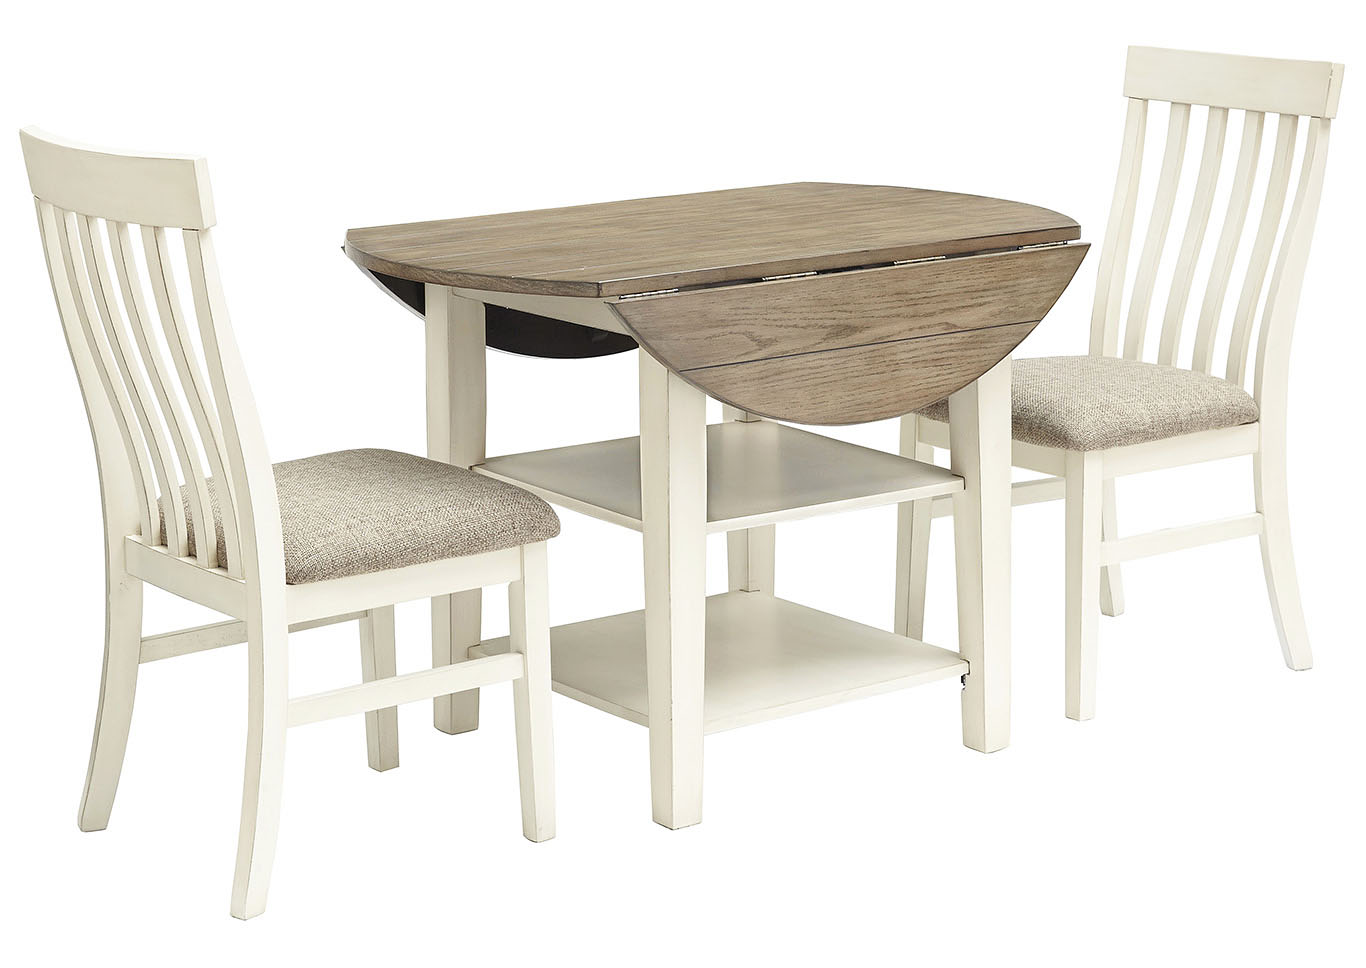 Bardilyn Dining Table w/2 Side Chairs,Benchcraft